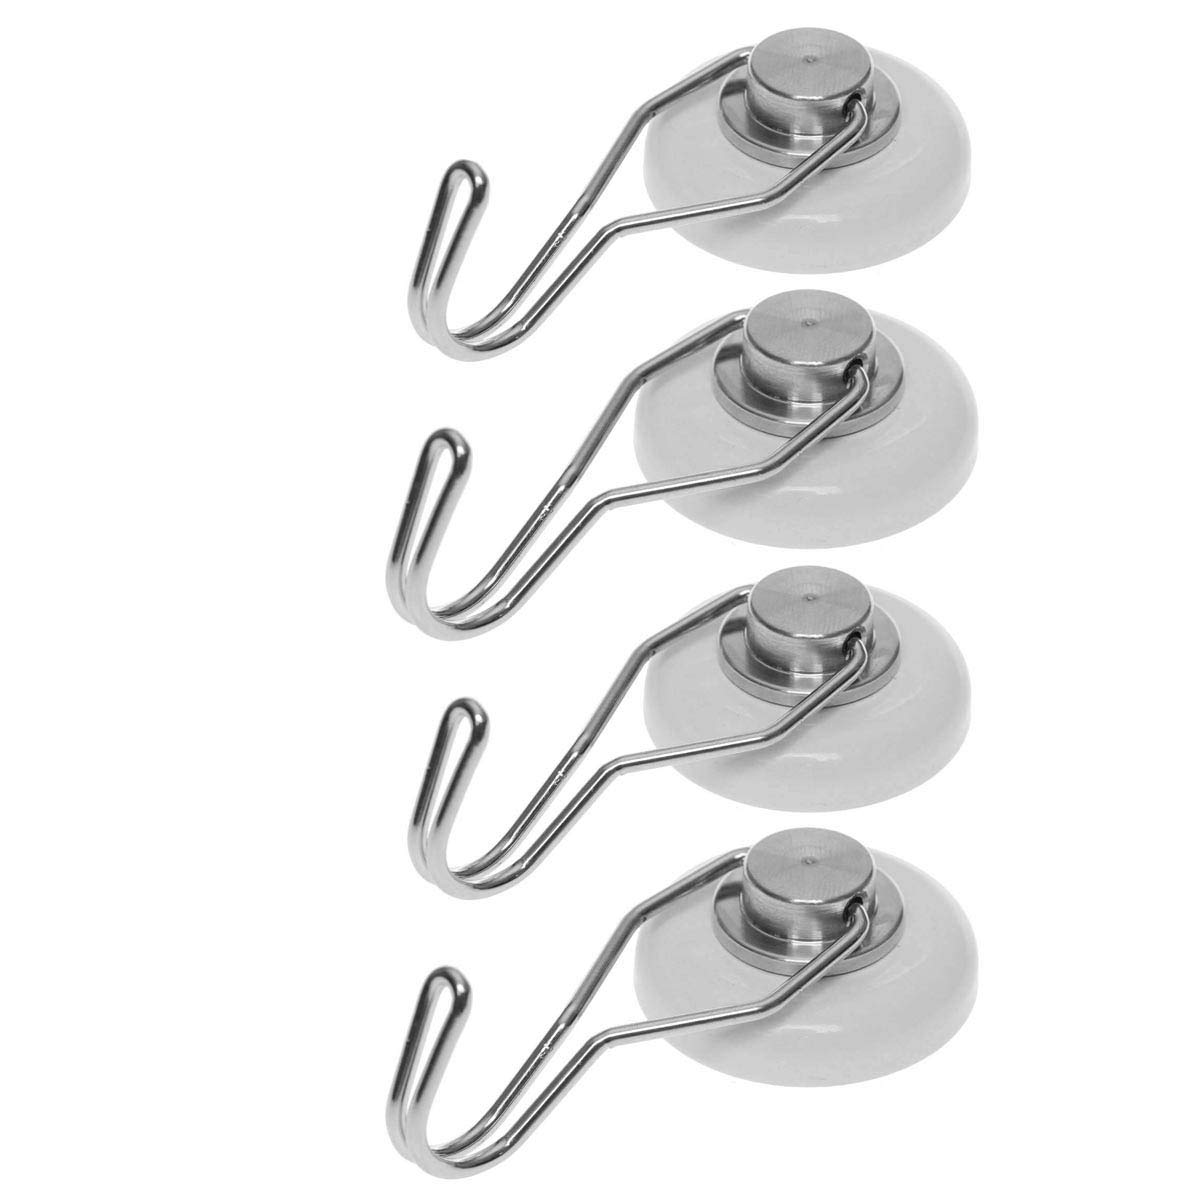 [4 Pack] Strong Magnetic Hooks (65 Pound) Rotating Swivel Hooks, The Strongest Earth Neodymium Magnet N52, Heavy Duty Magnets by MAVORO. Great for Indoor/Outdoor. Rust Free